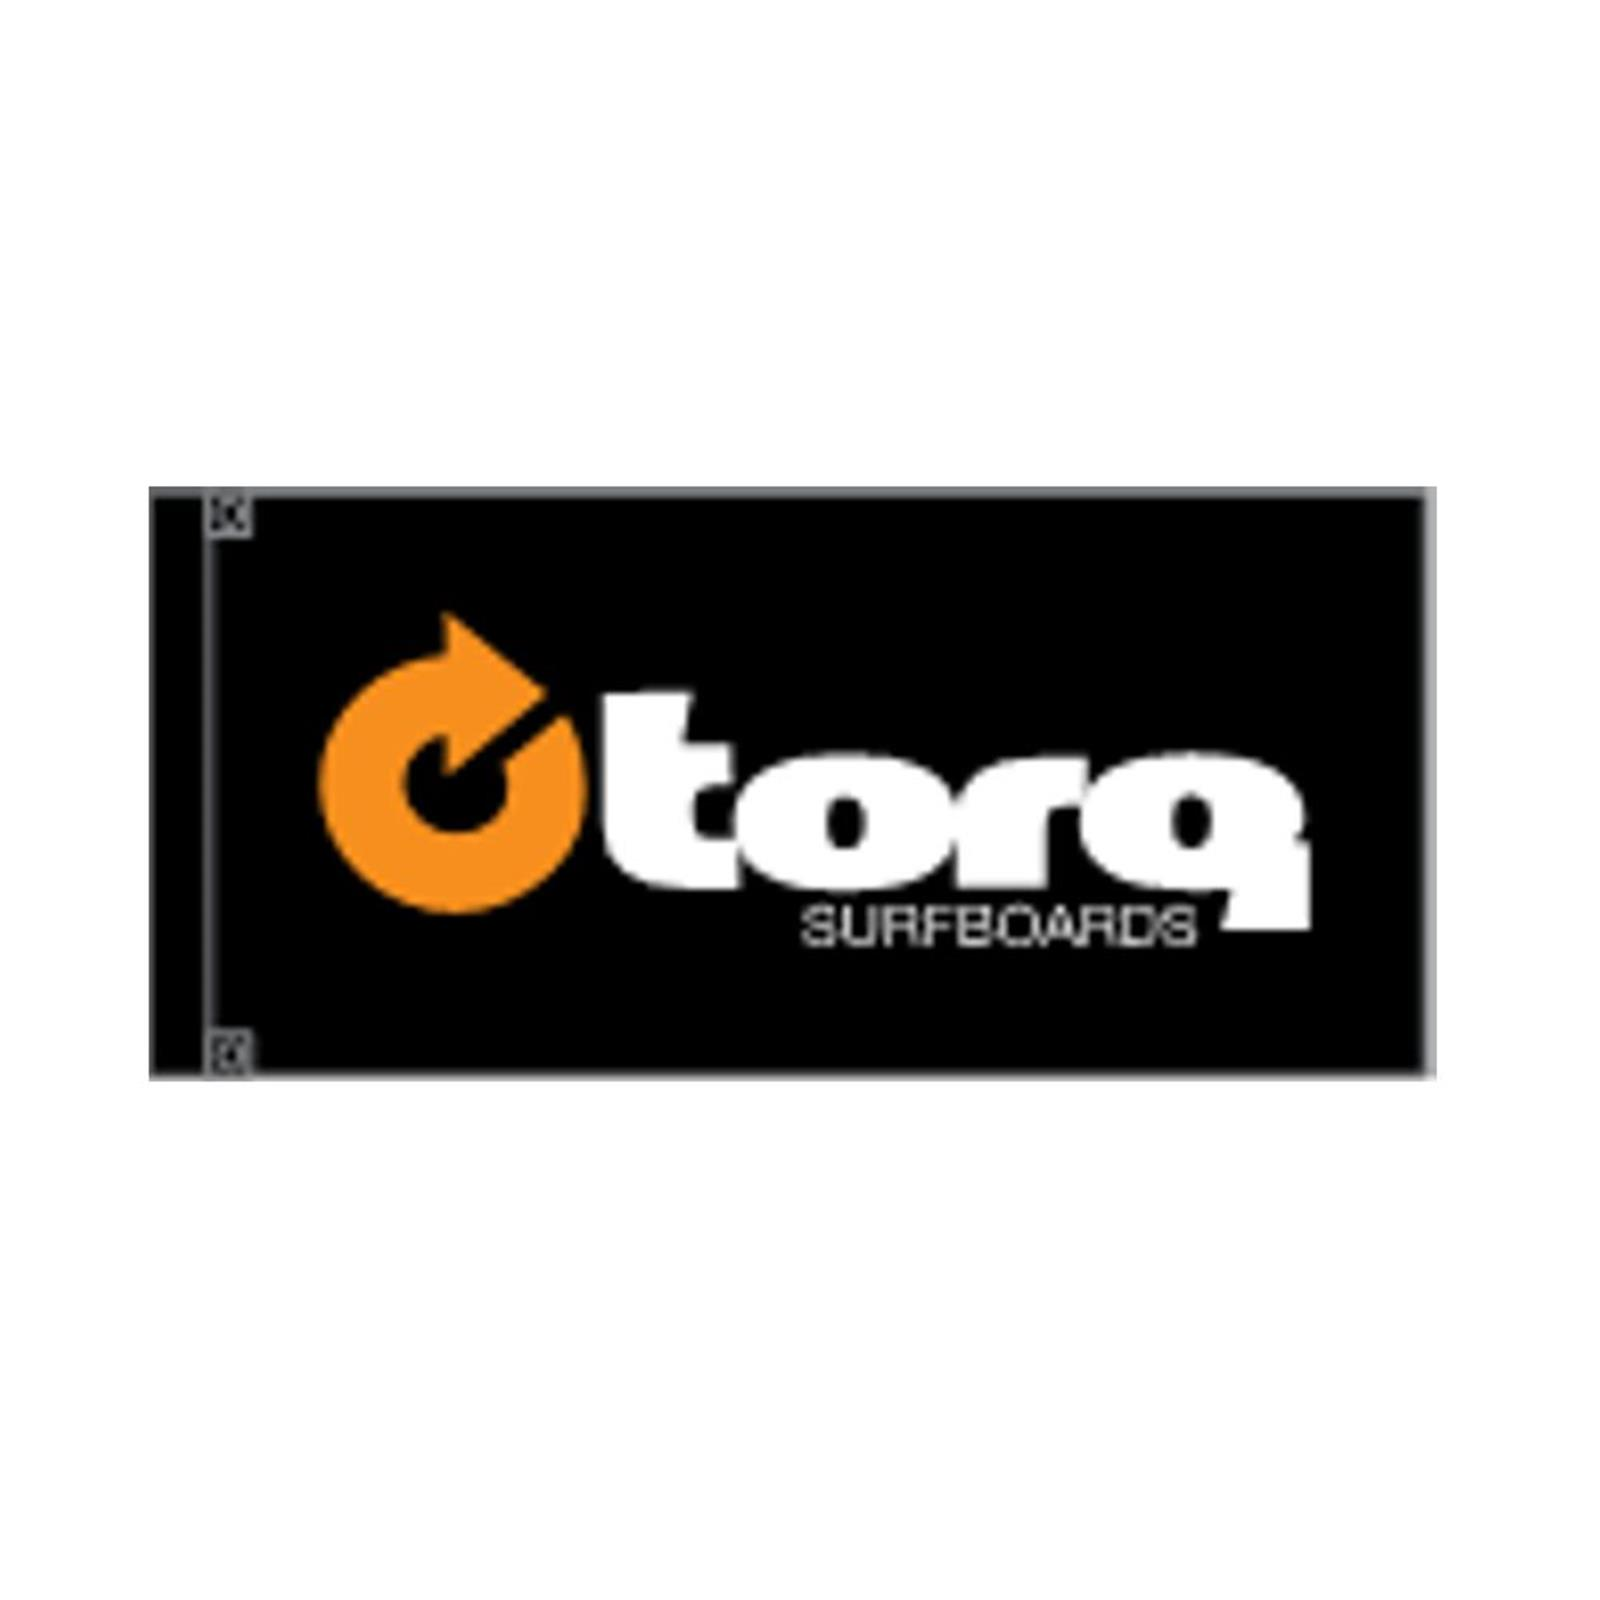 Flagge TORQ Surfboards 100x200cm